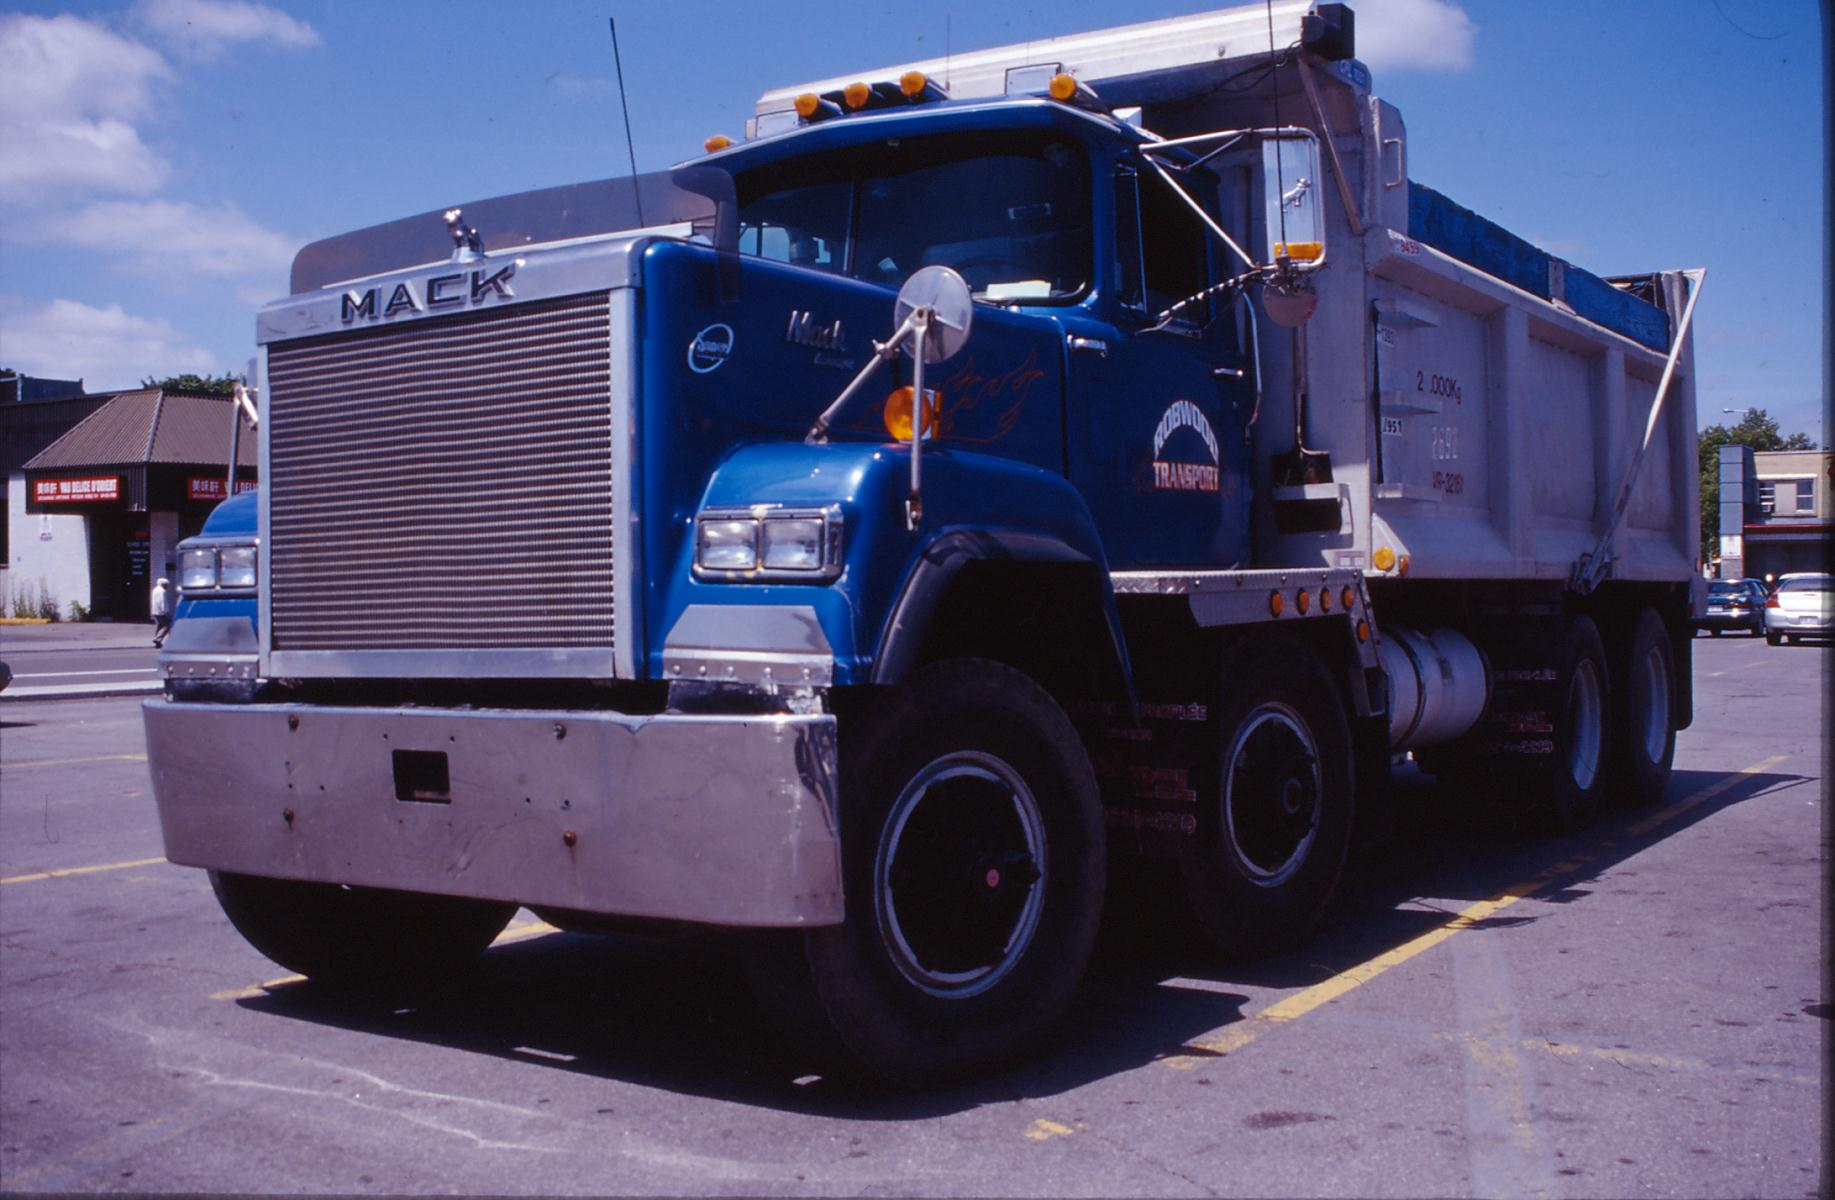 hight resolution of mack truck images photos